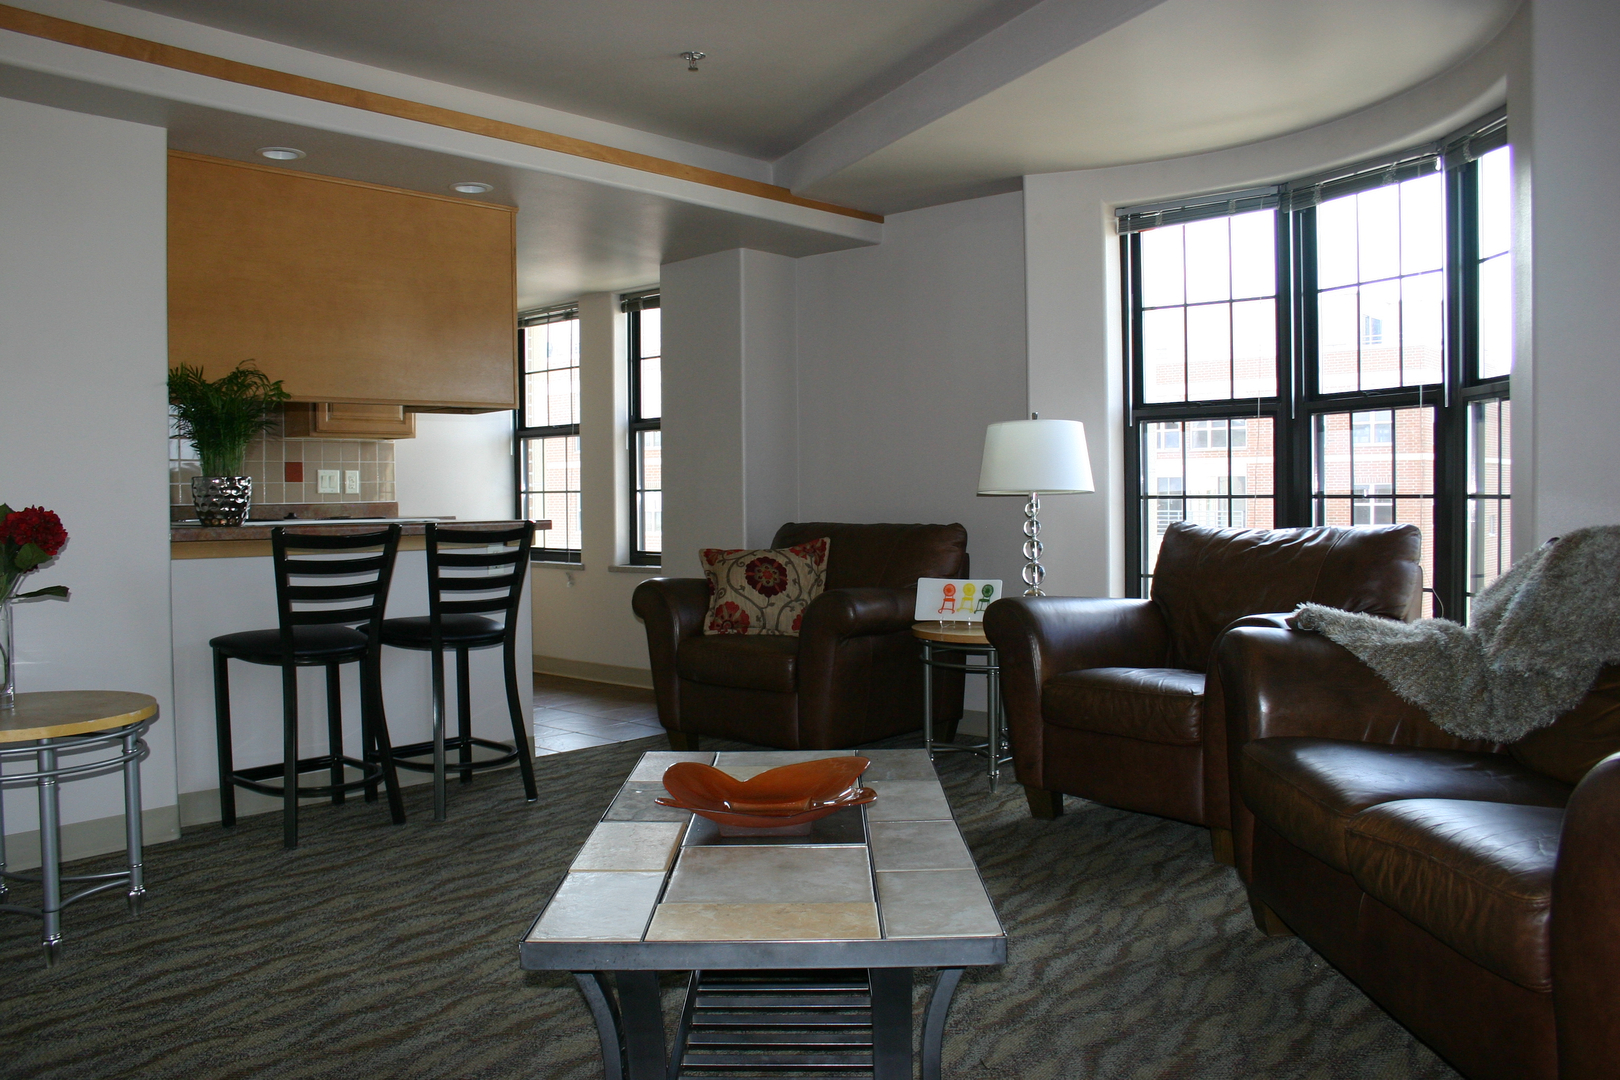 Enjoy open floor plans with large entertaining spaces at the Aberdeen Apartments